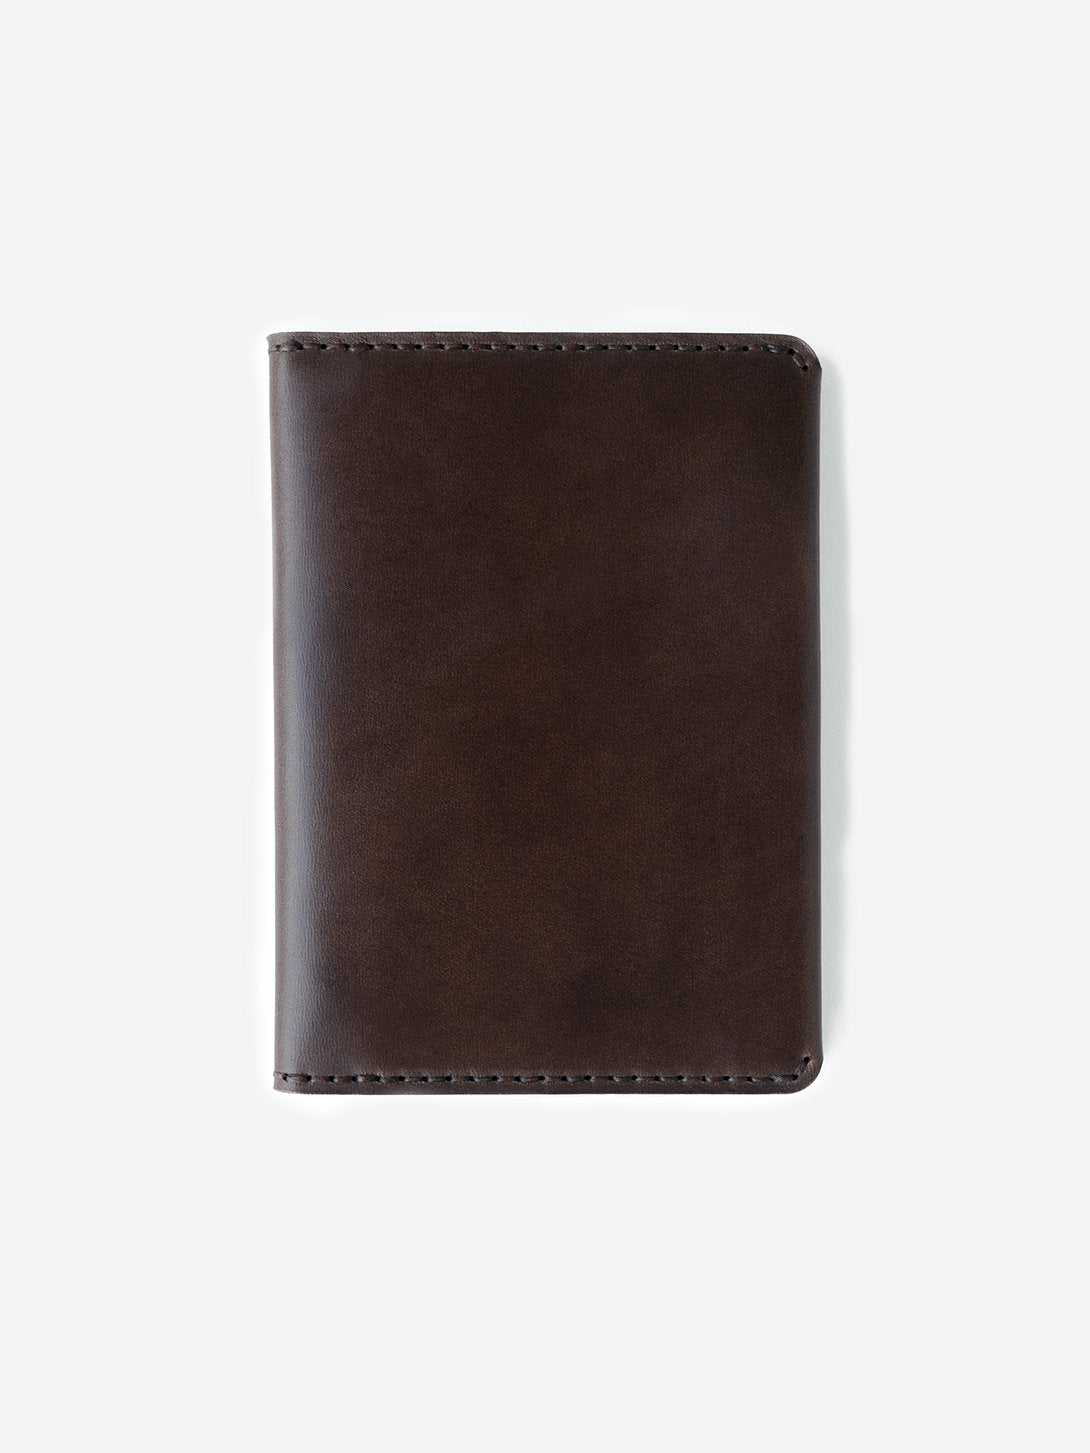 BARK mens leather wallet brown bifold passport wallet makr